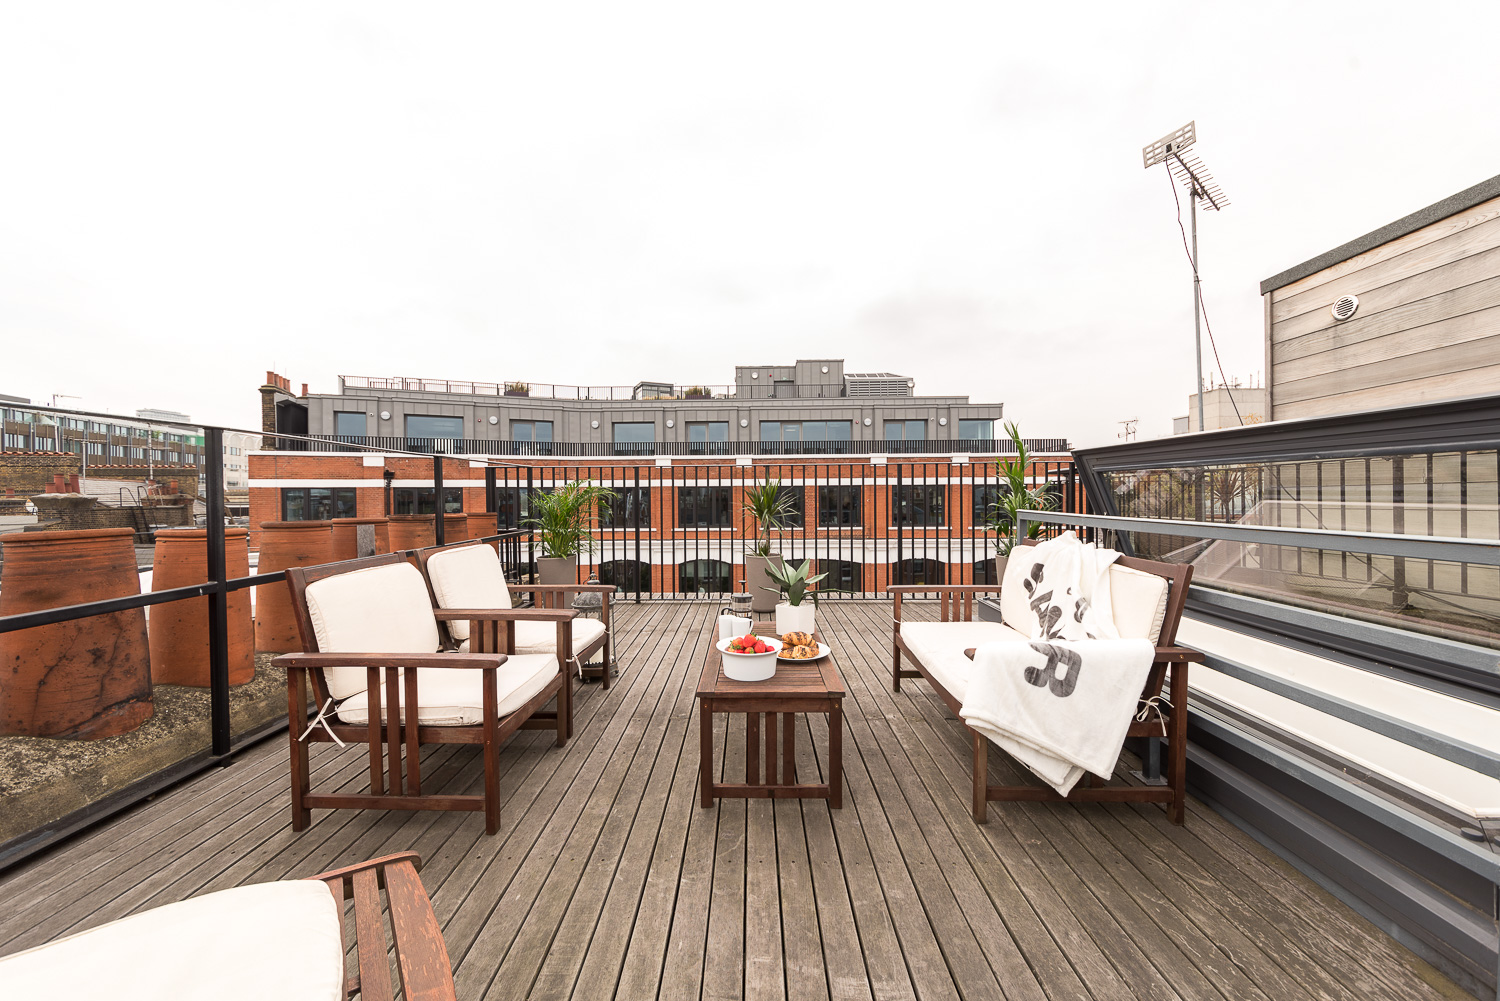 Lovelydays luxury service apartment rental - London - Fitzrovia - Foley Street II - Lovelysuite - 2 bedrooms - 2 bathrooms - Roof top central London - 5aac8d5c7524 - Lovelydays